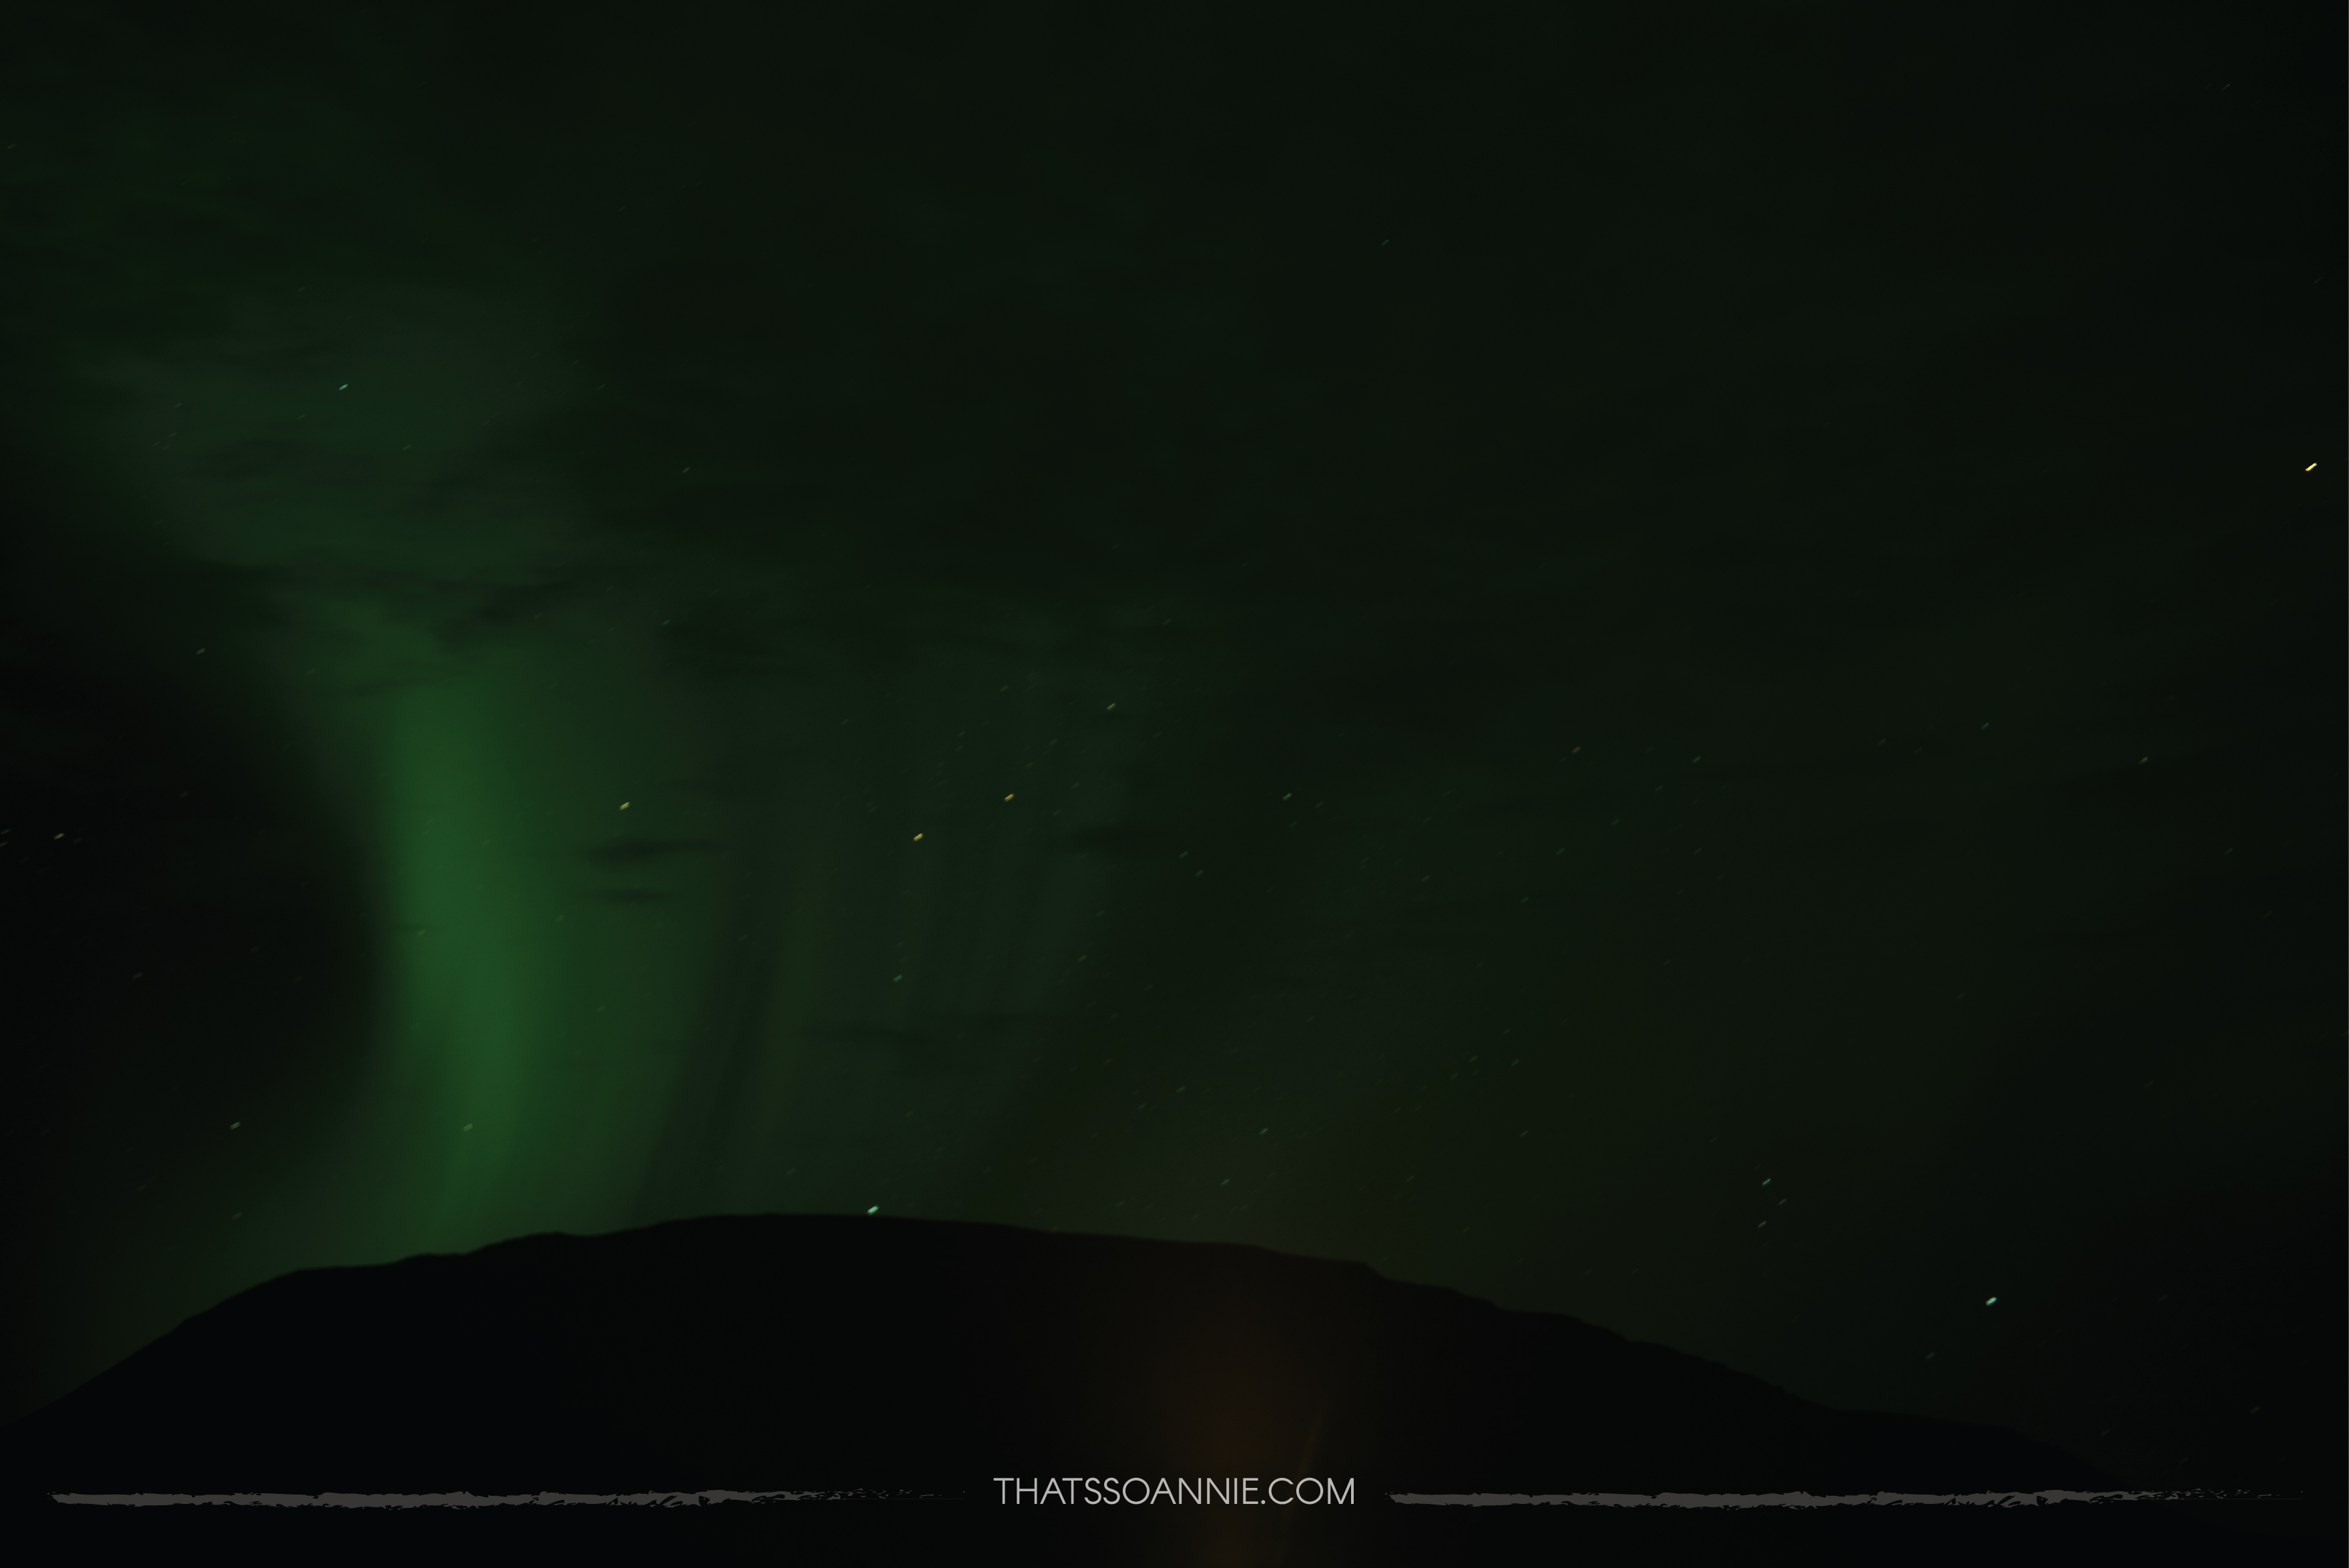 Not too bad for our first Northern Lights photo trial huh?